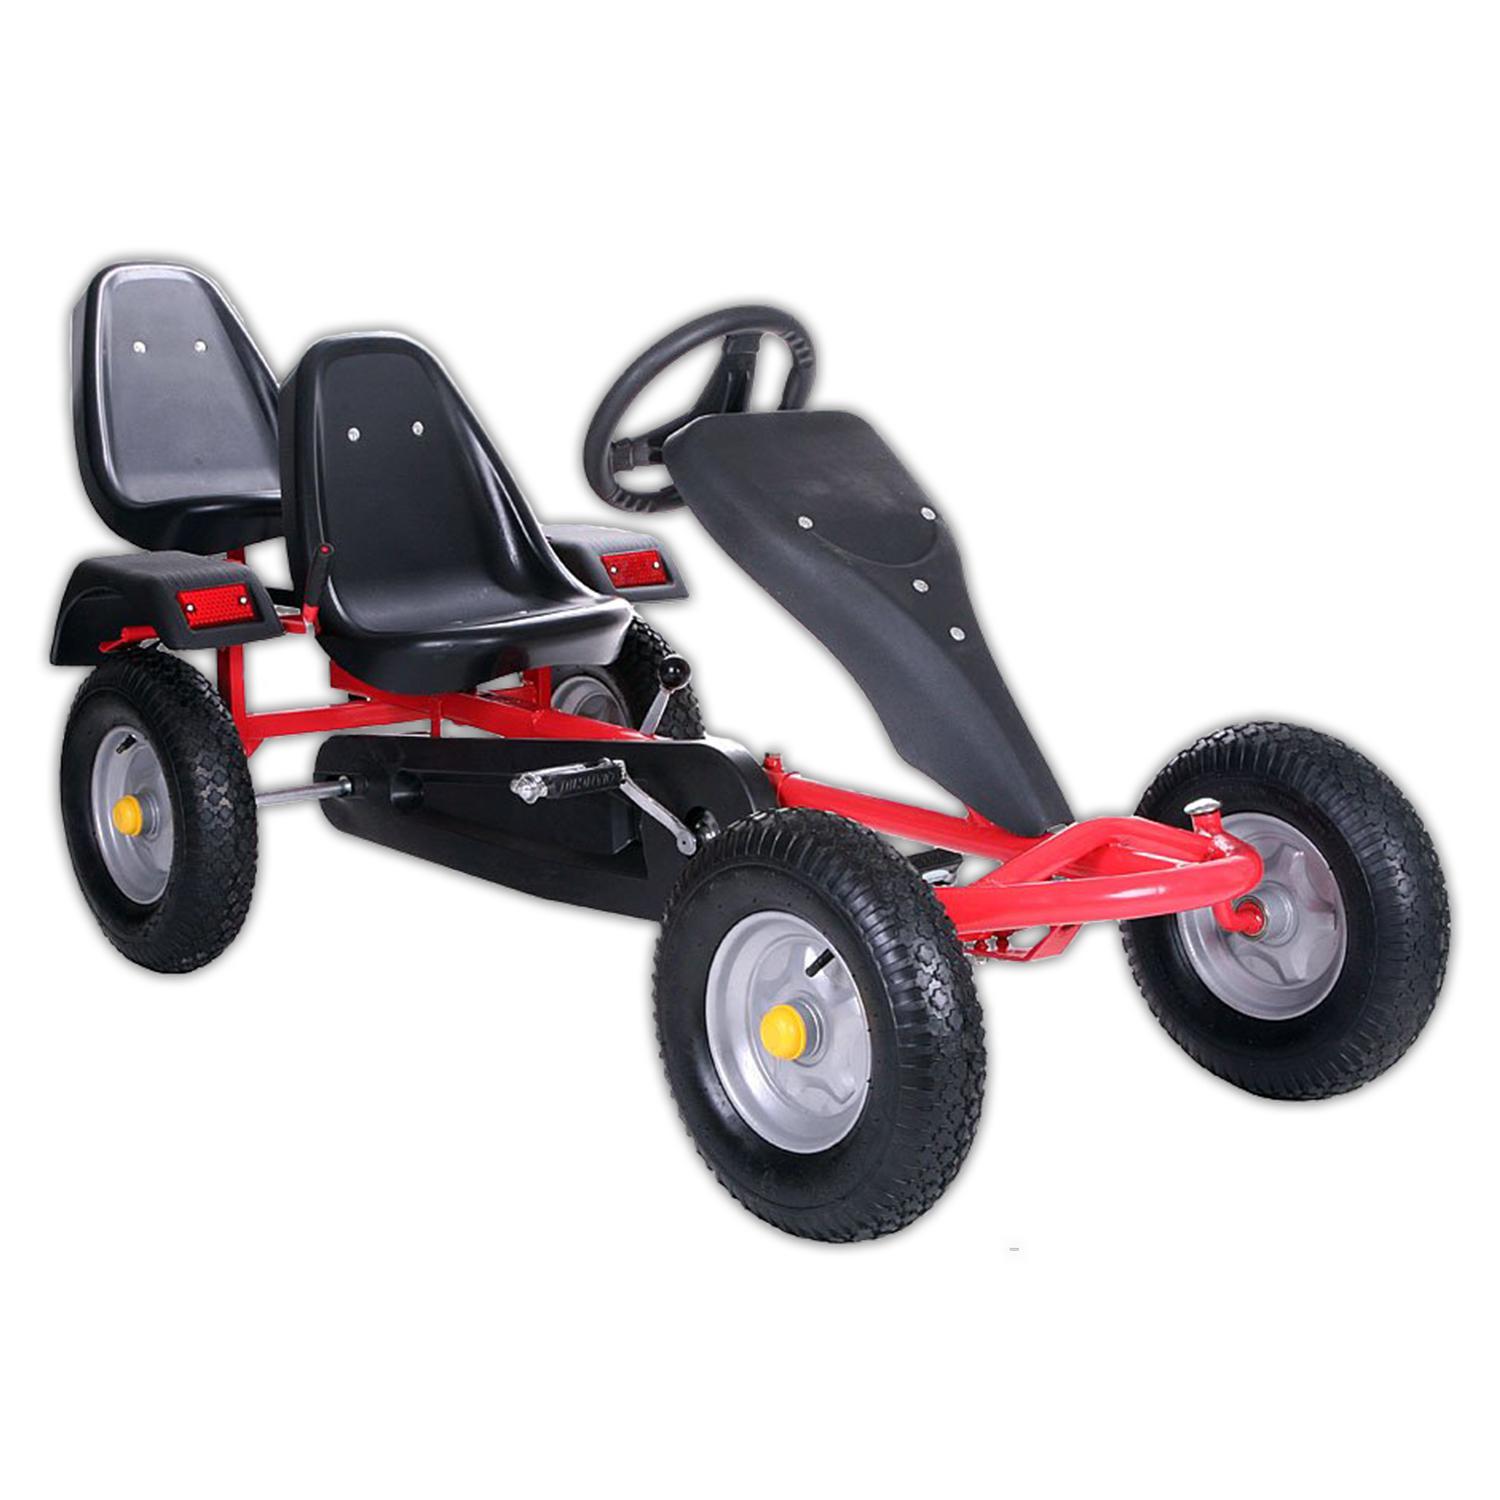 gokart 2 sitz rennkart gocart kinderfahrzeug kinder kart. Black Bedroom Furniture Sets. Home Design Ideas